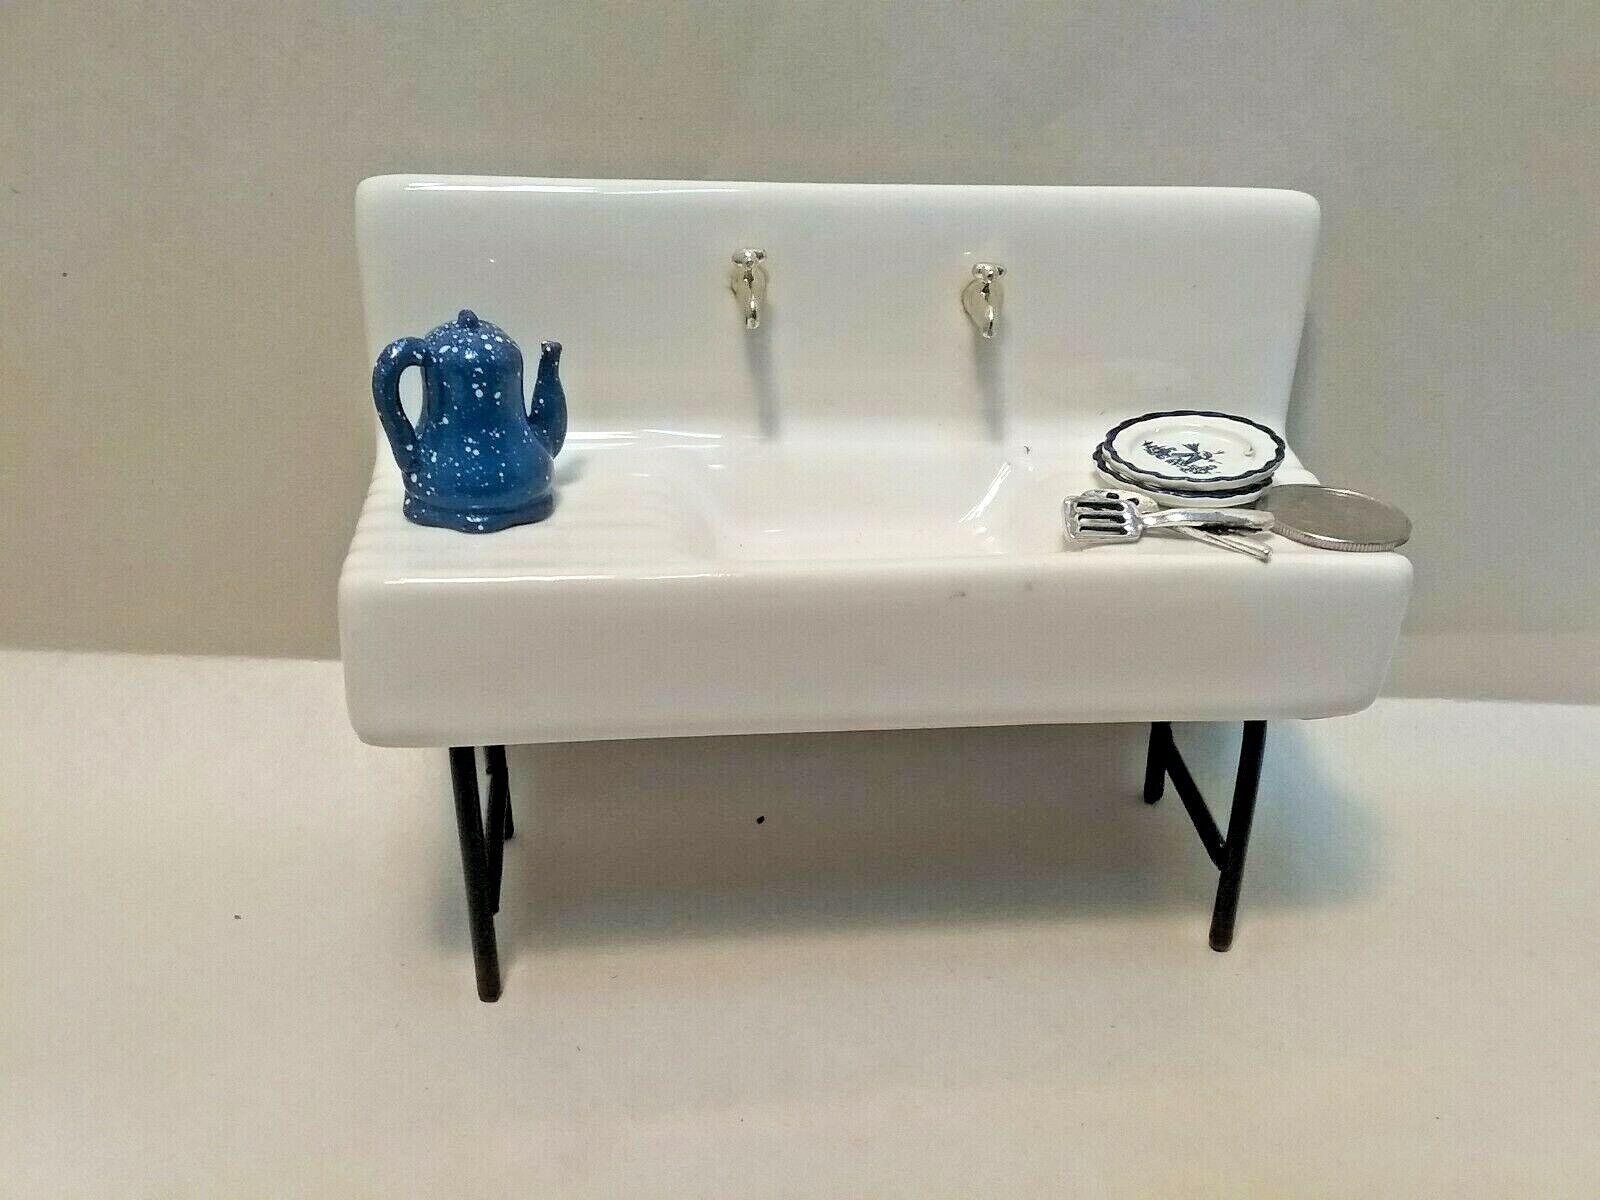 Dollhouse Miniature 1920 Kitchen Sink on Metal Legs inc Accessories Old Time